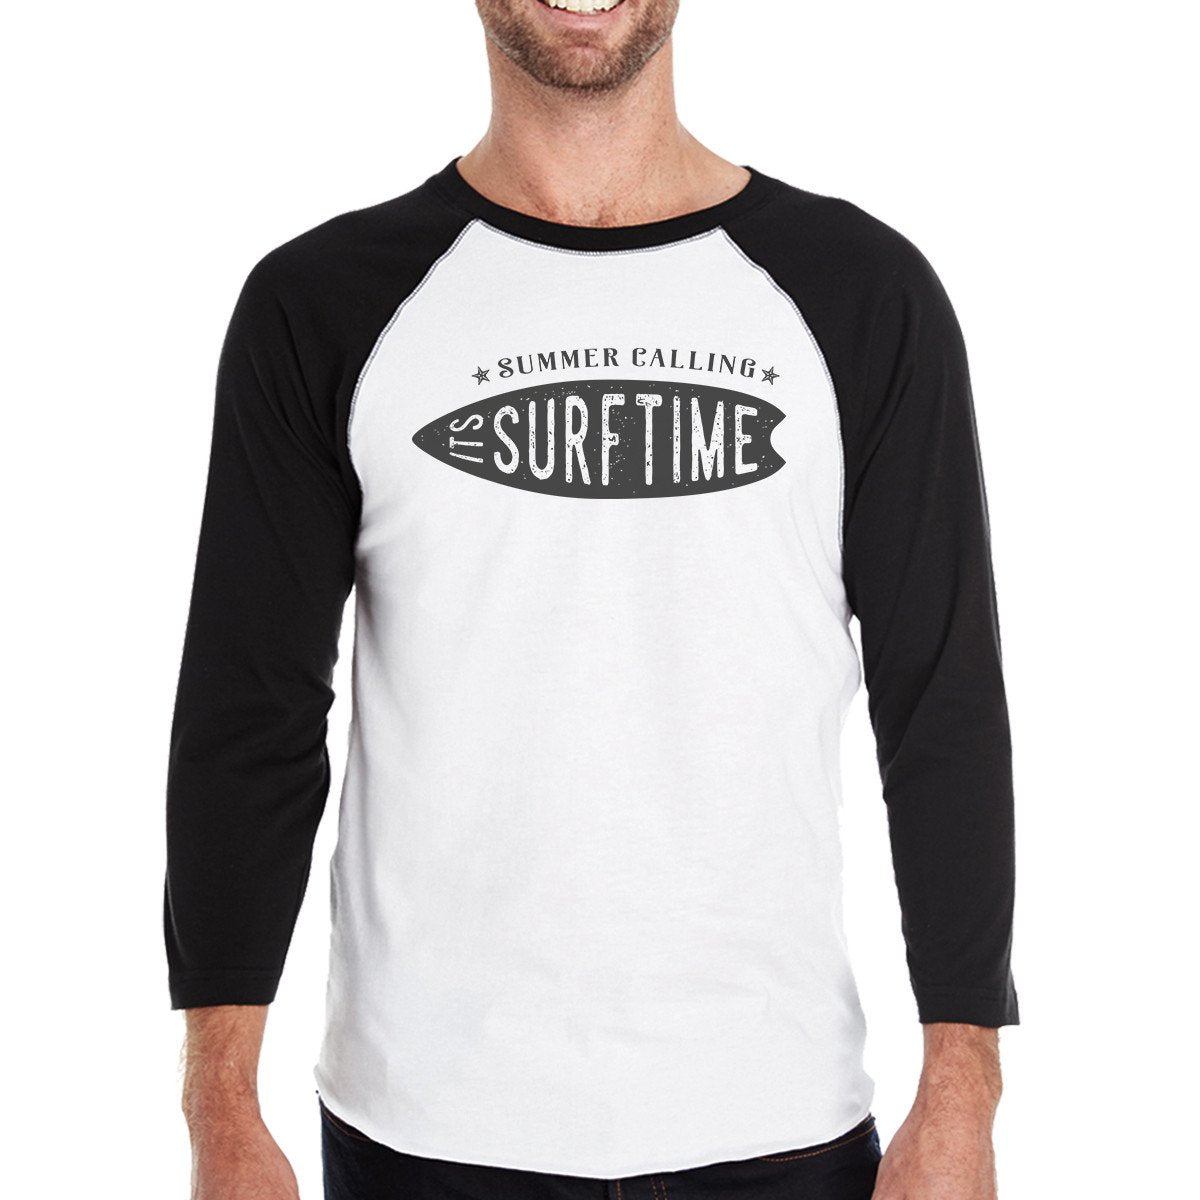 Summer Calling It's Surf Time Mens Black And White Baseball Shirt